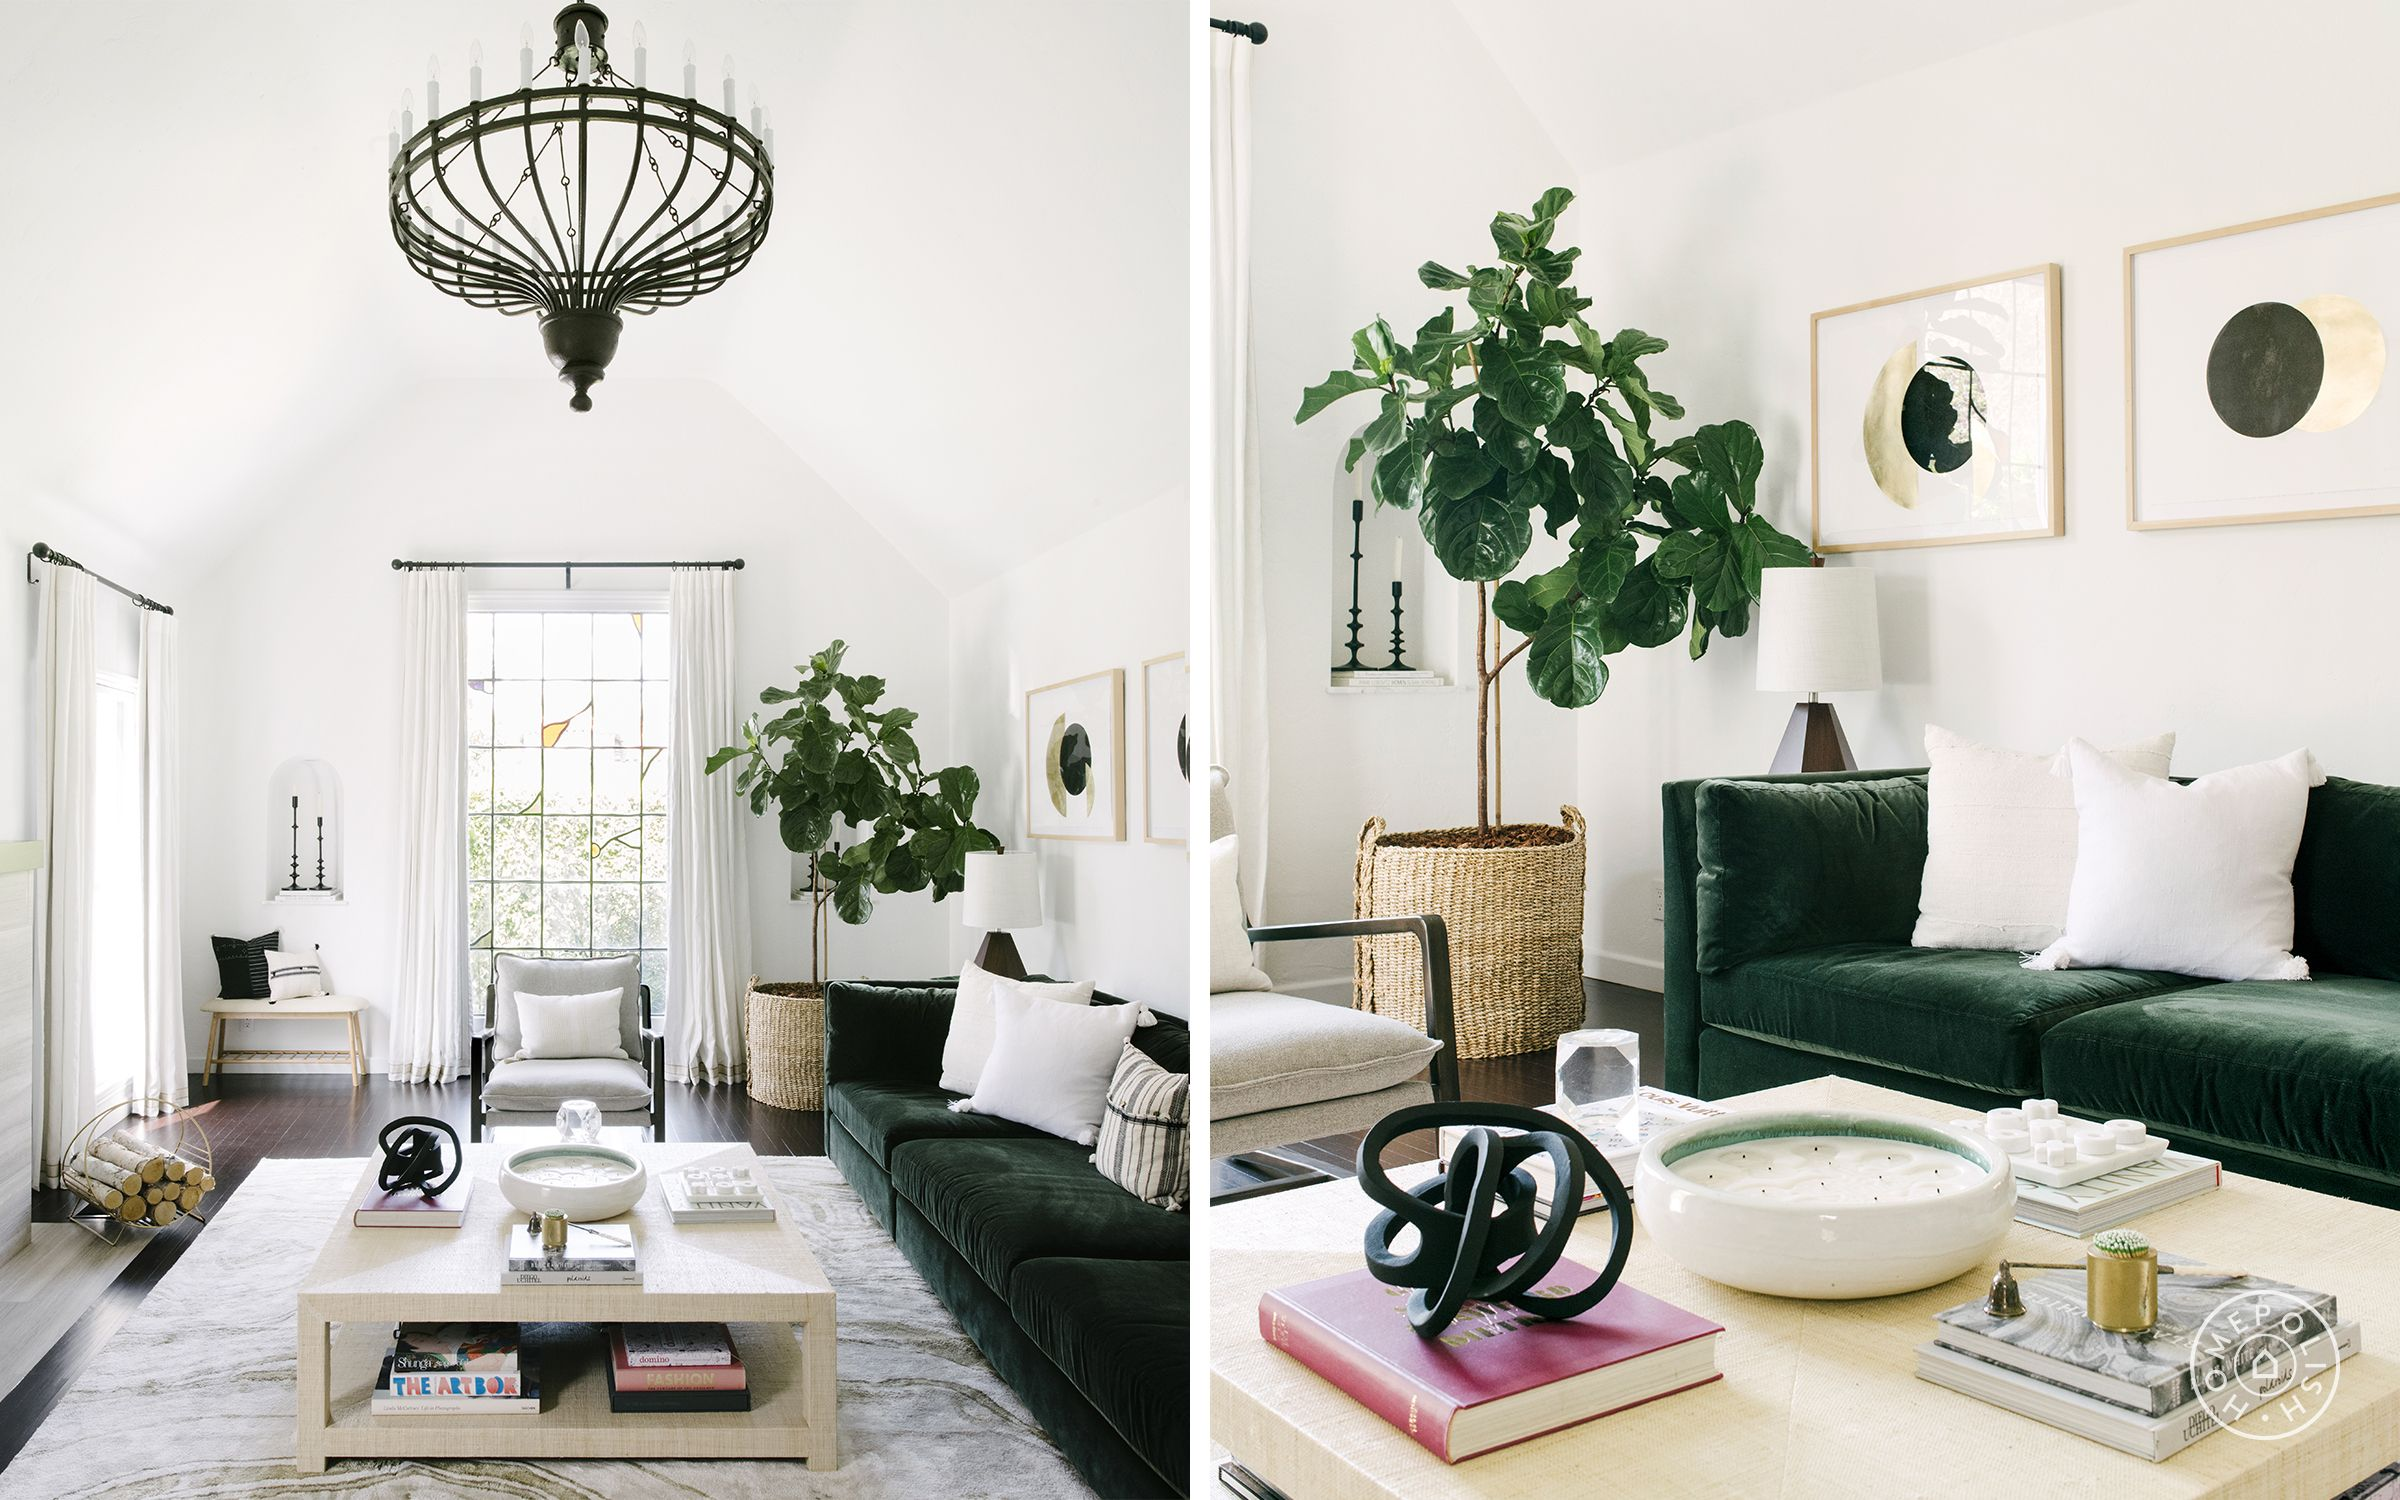 Sibling Harmony in West Hollywood – Homepolish | Spanish home decor, Spanish style homes, Spanish decor